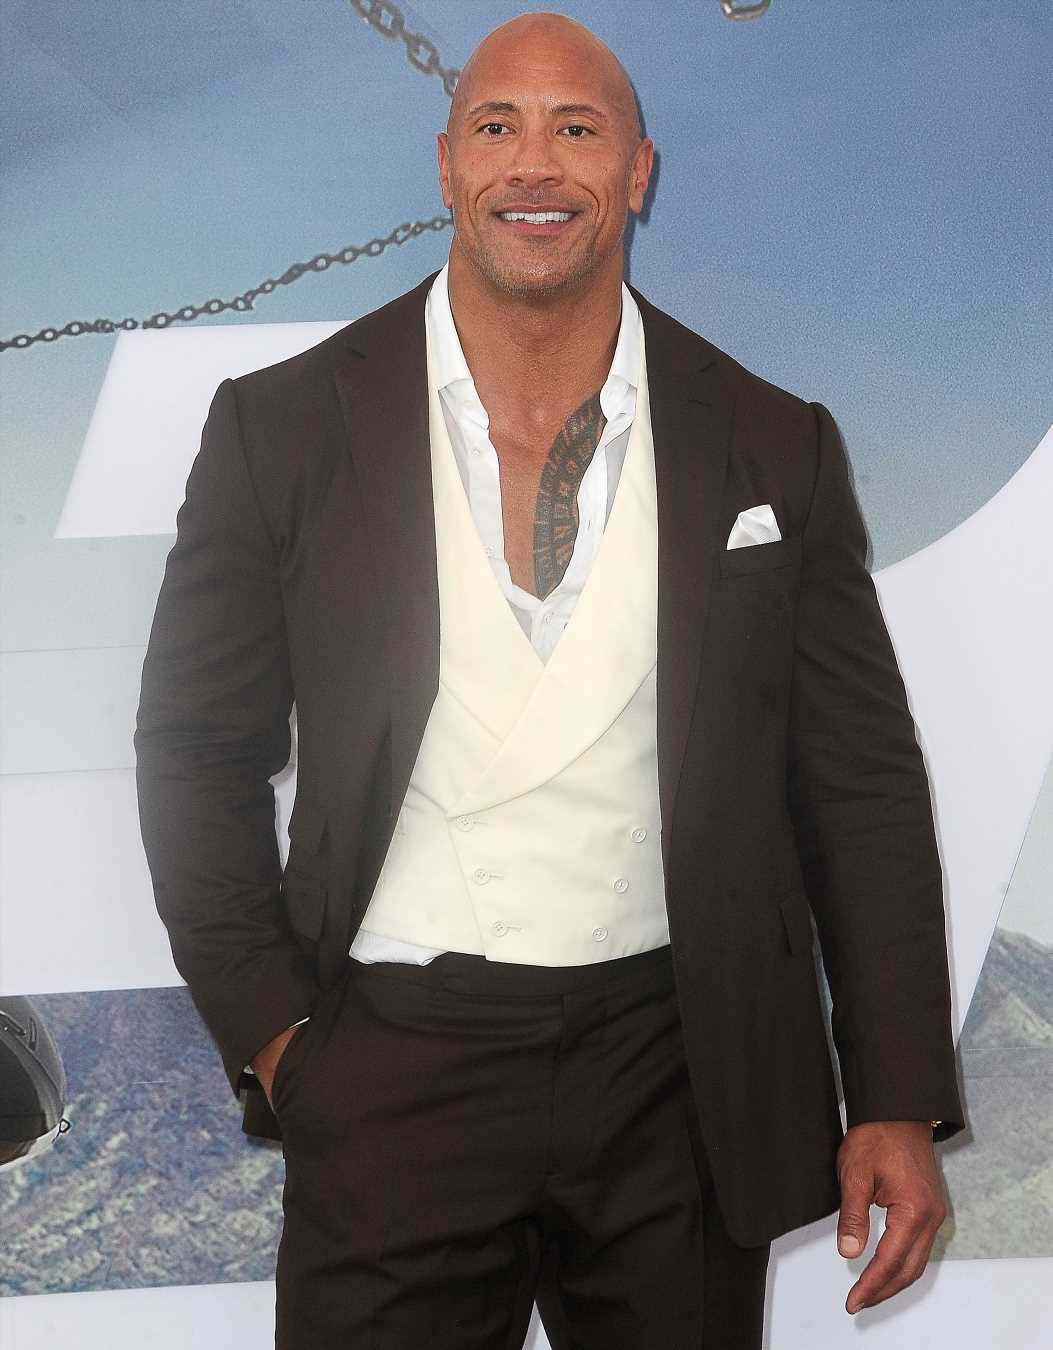 Dwayne 'the Rock' Johnson Says He's 'Full of Gratitude' as Ballers Announces Series Will End